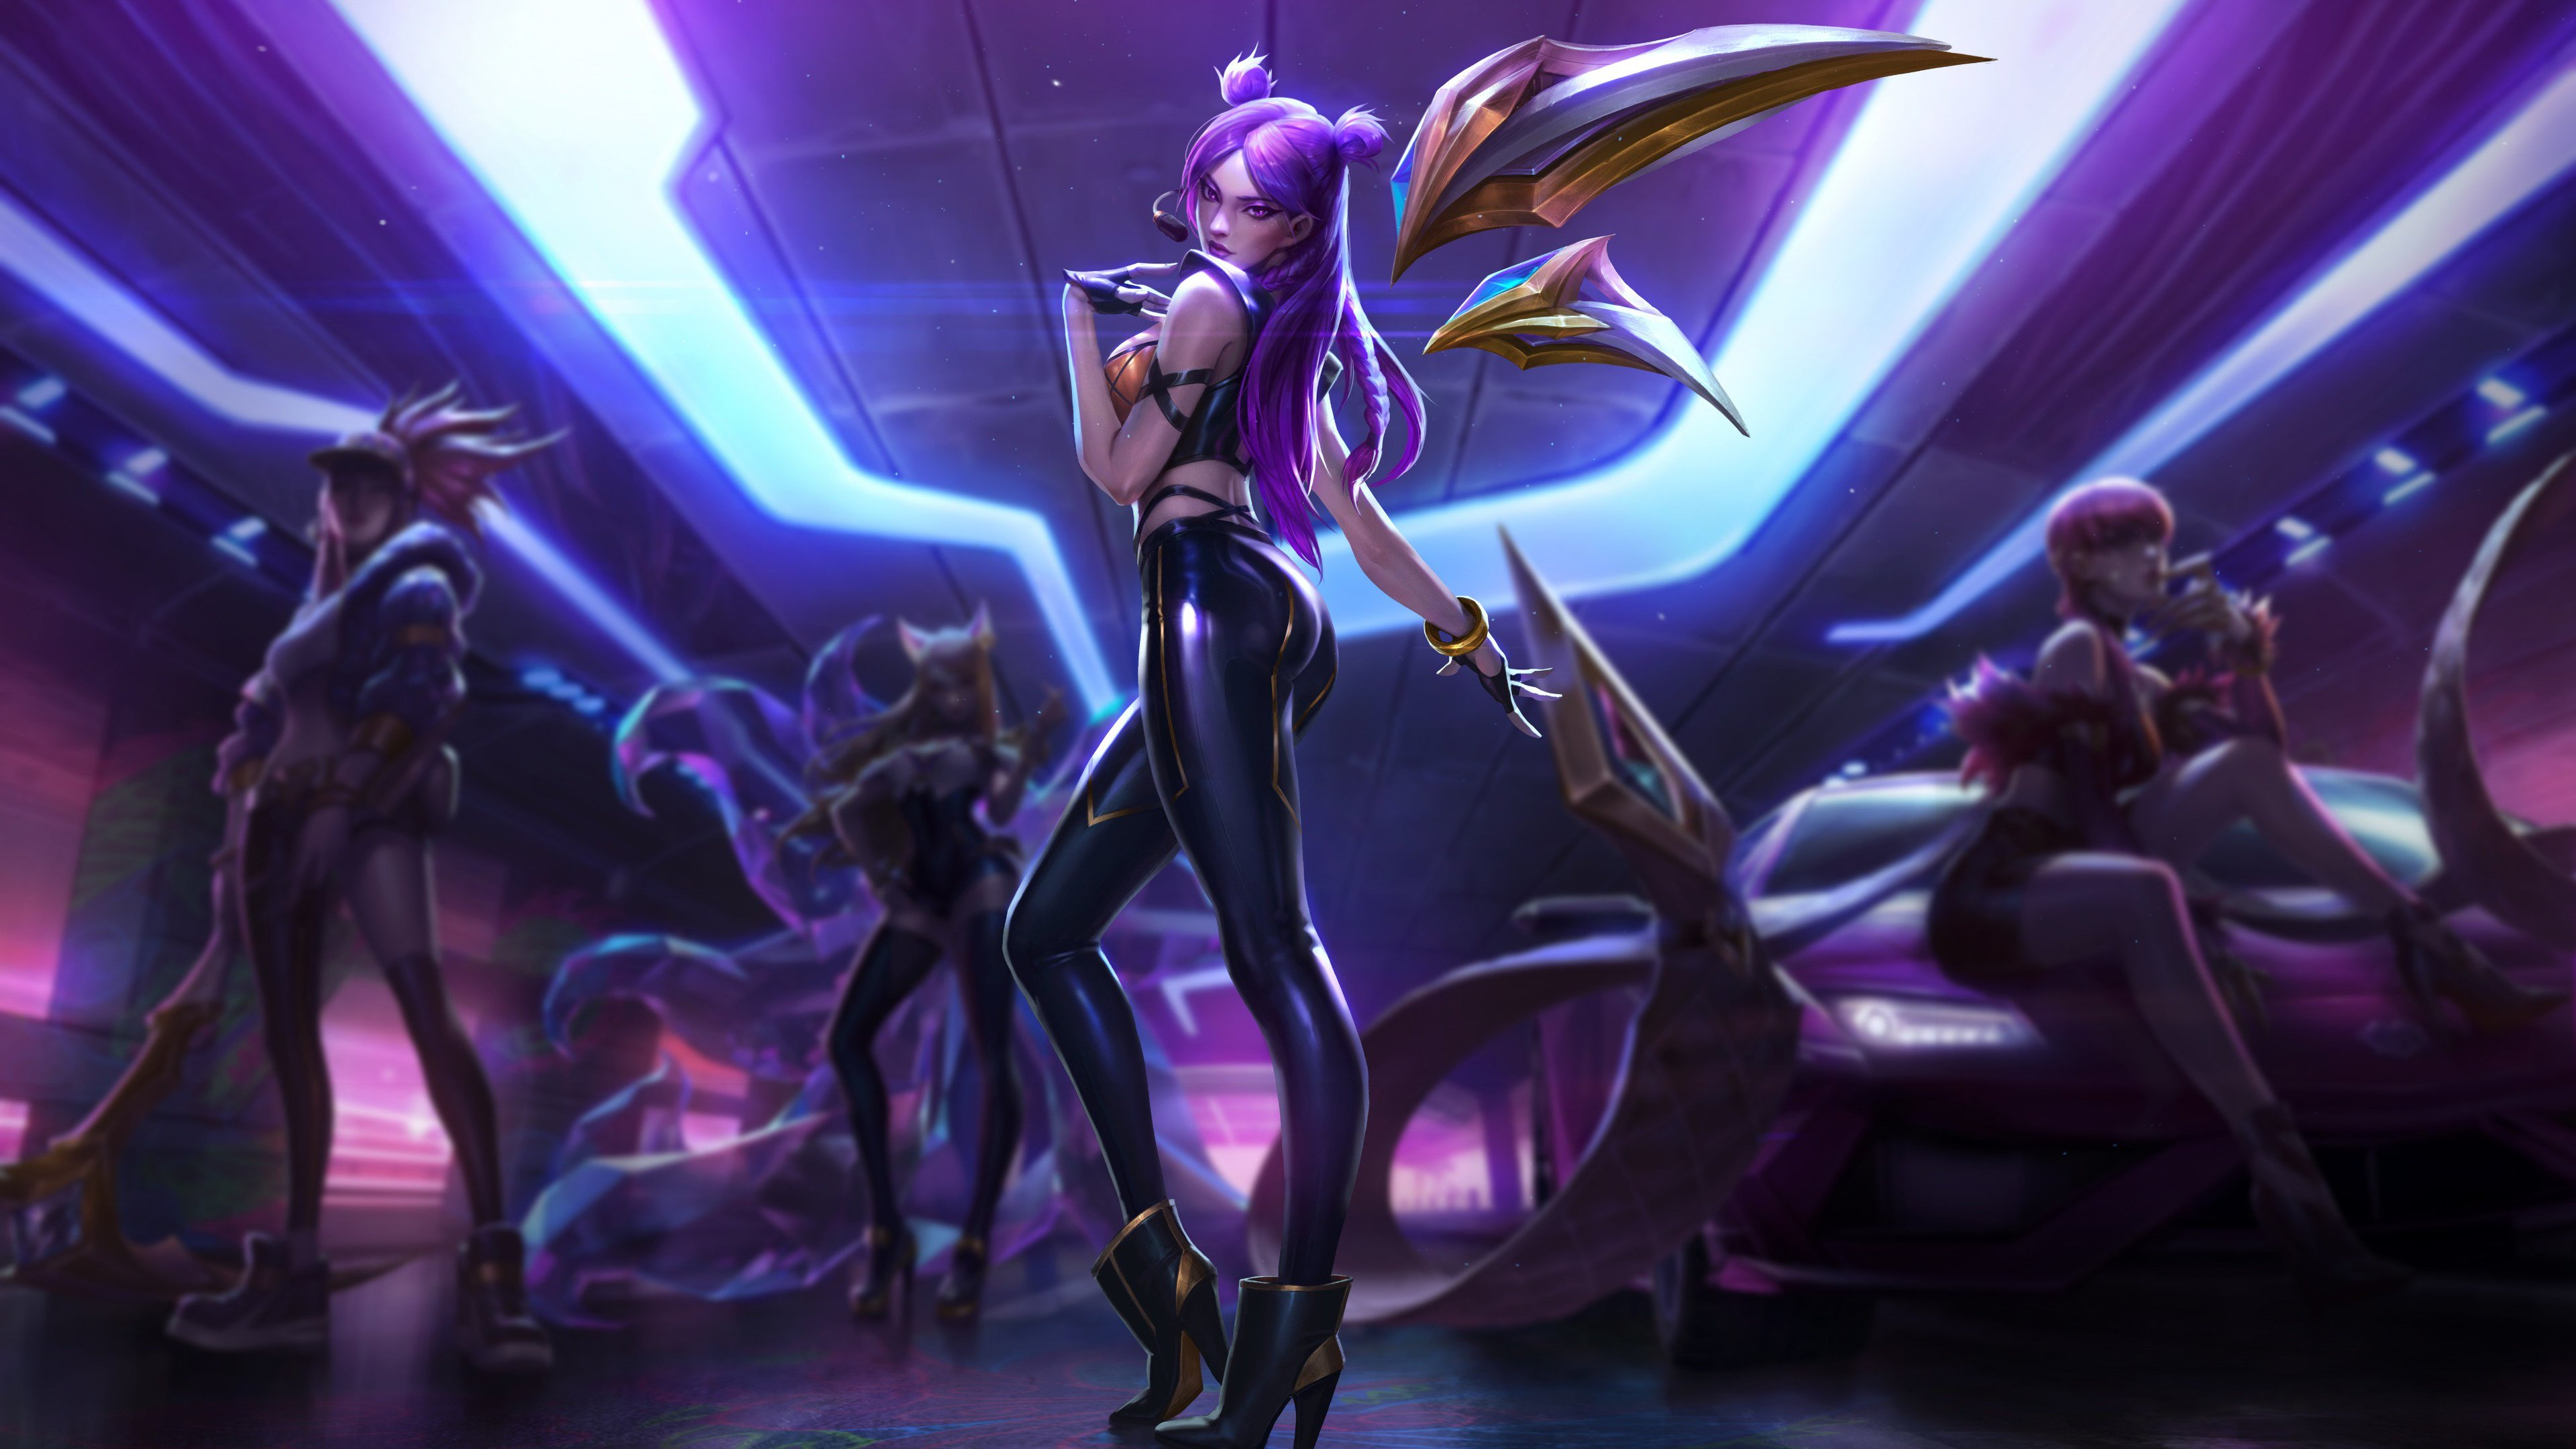 Wallpaper 4k Kaisa League Of Legends 4k 4k Wallpapers Games